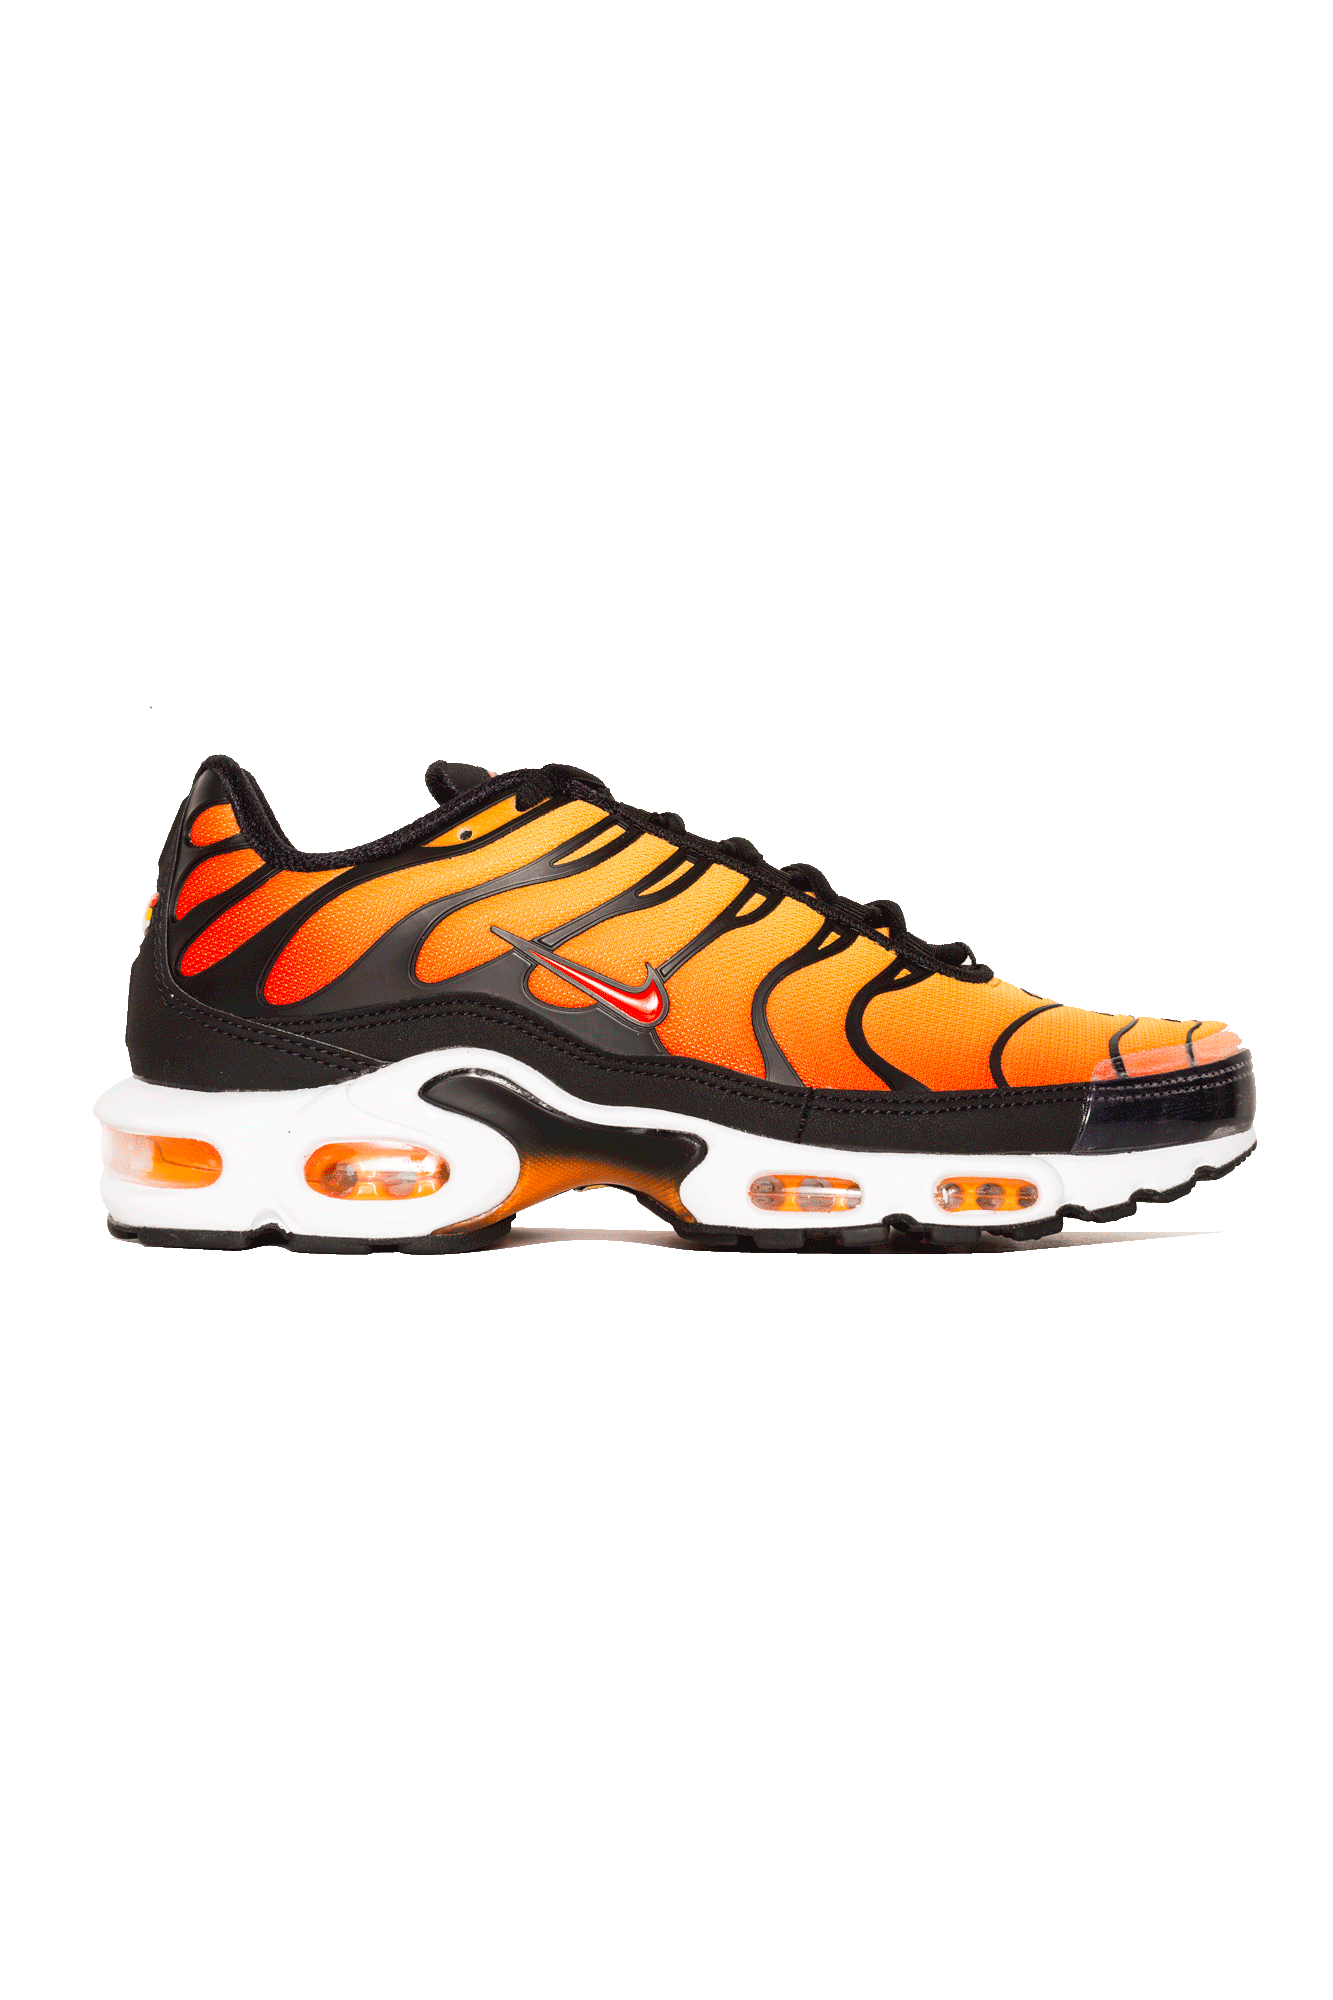 Nike Sneakers Air Max Plus OG Orange BQ4629 #000#001#4 One